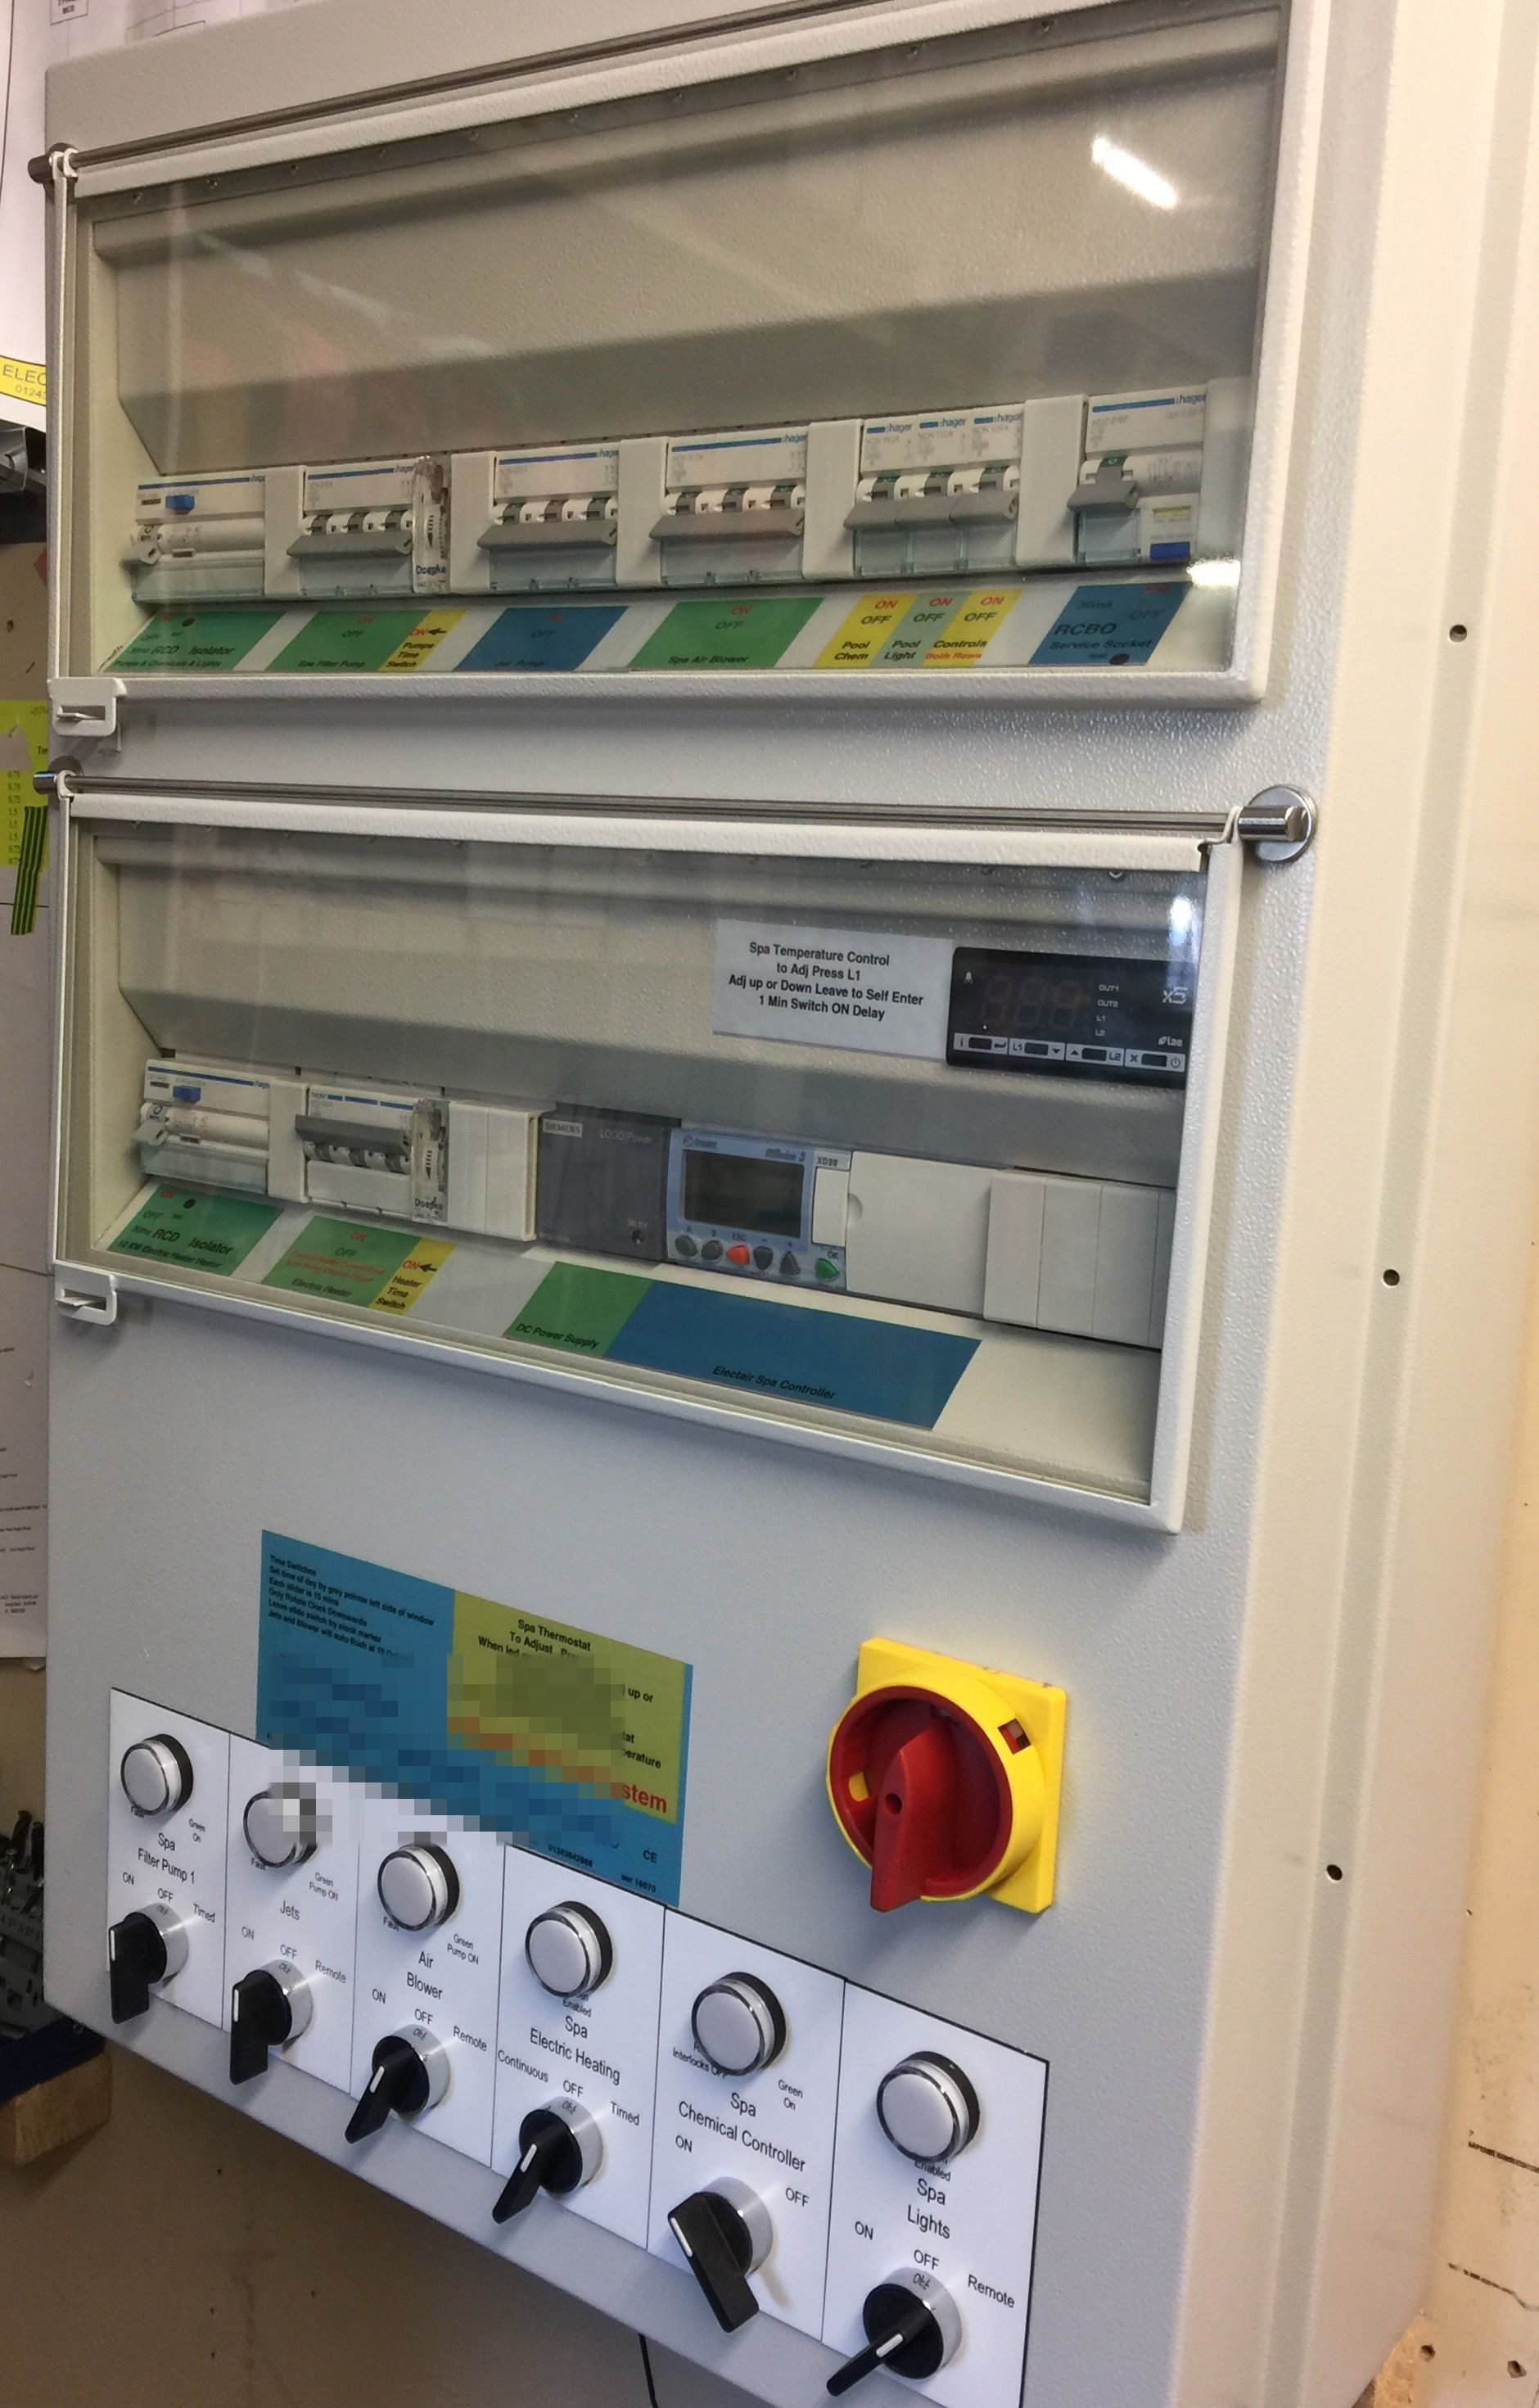 Swimming pool control panel size 4